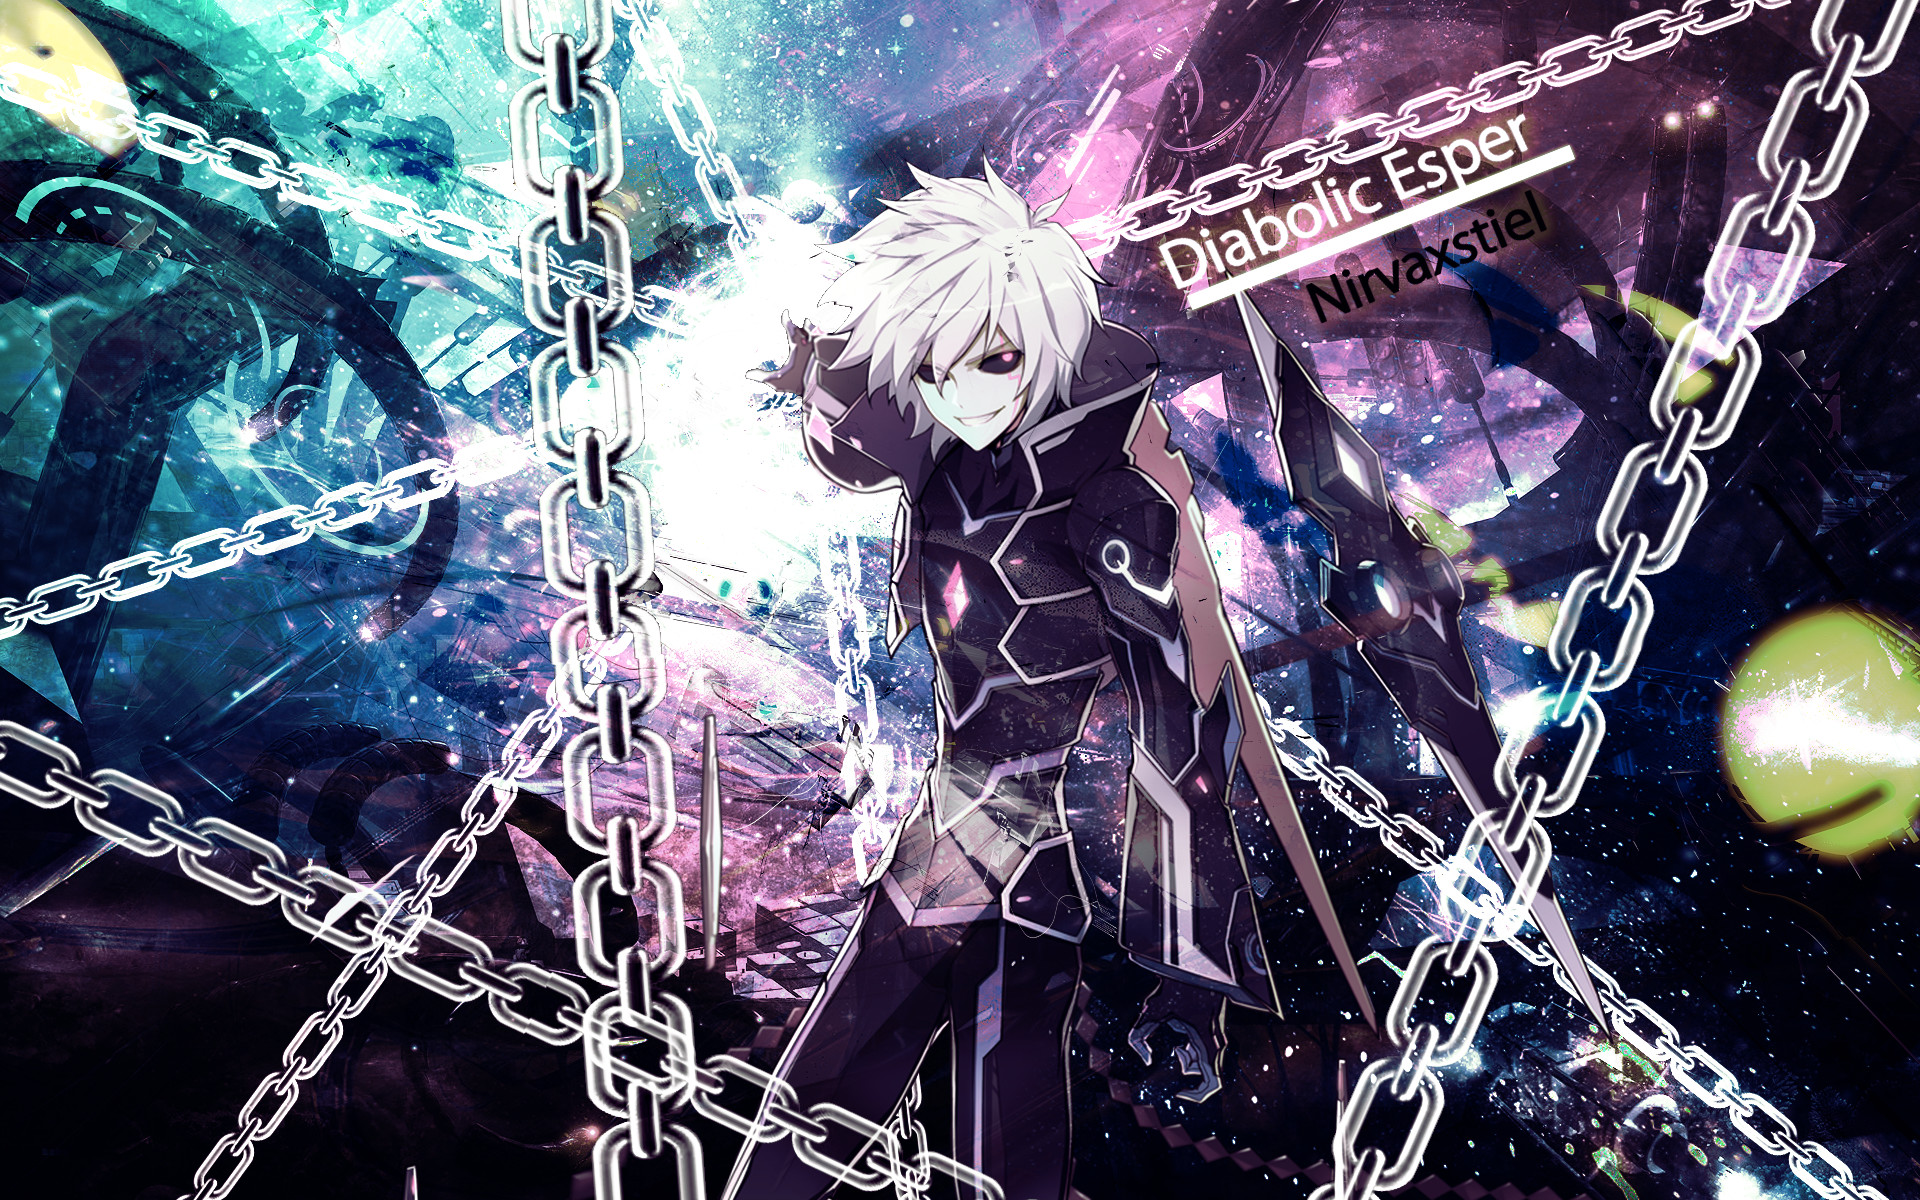 1920x1200 ... Elsword - Add Diabolic Esper Wallpaper by Nirvaxstiel